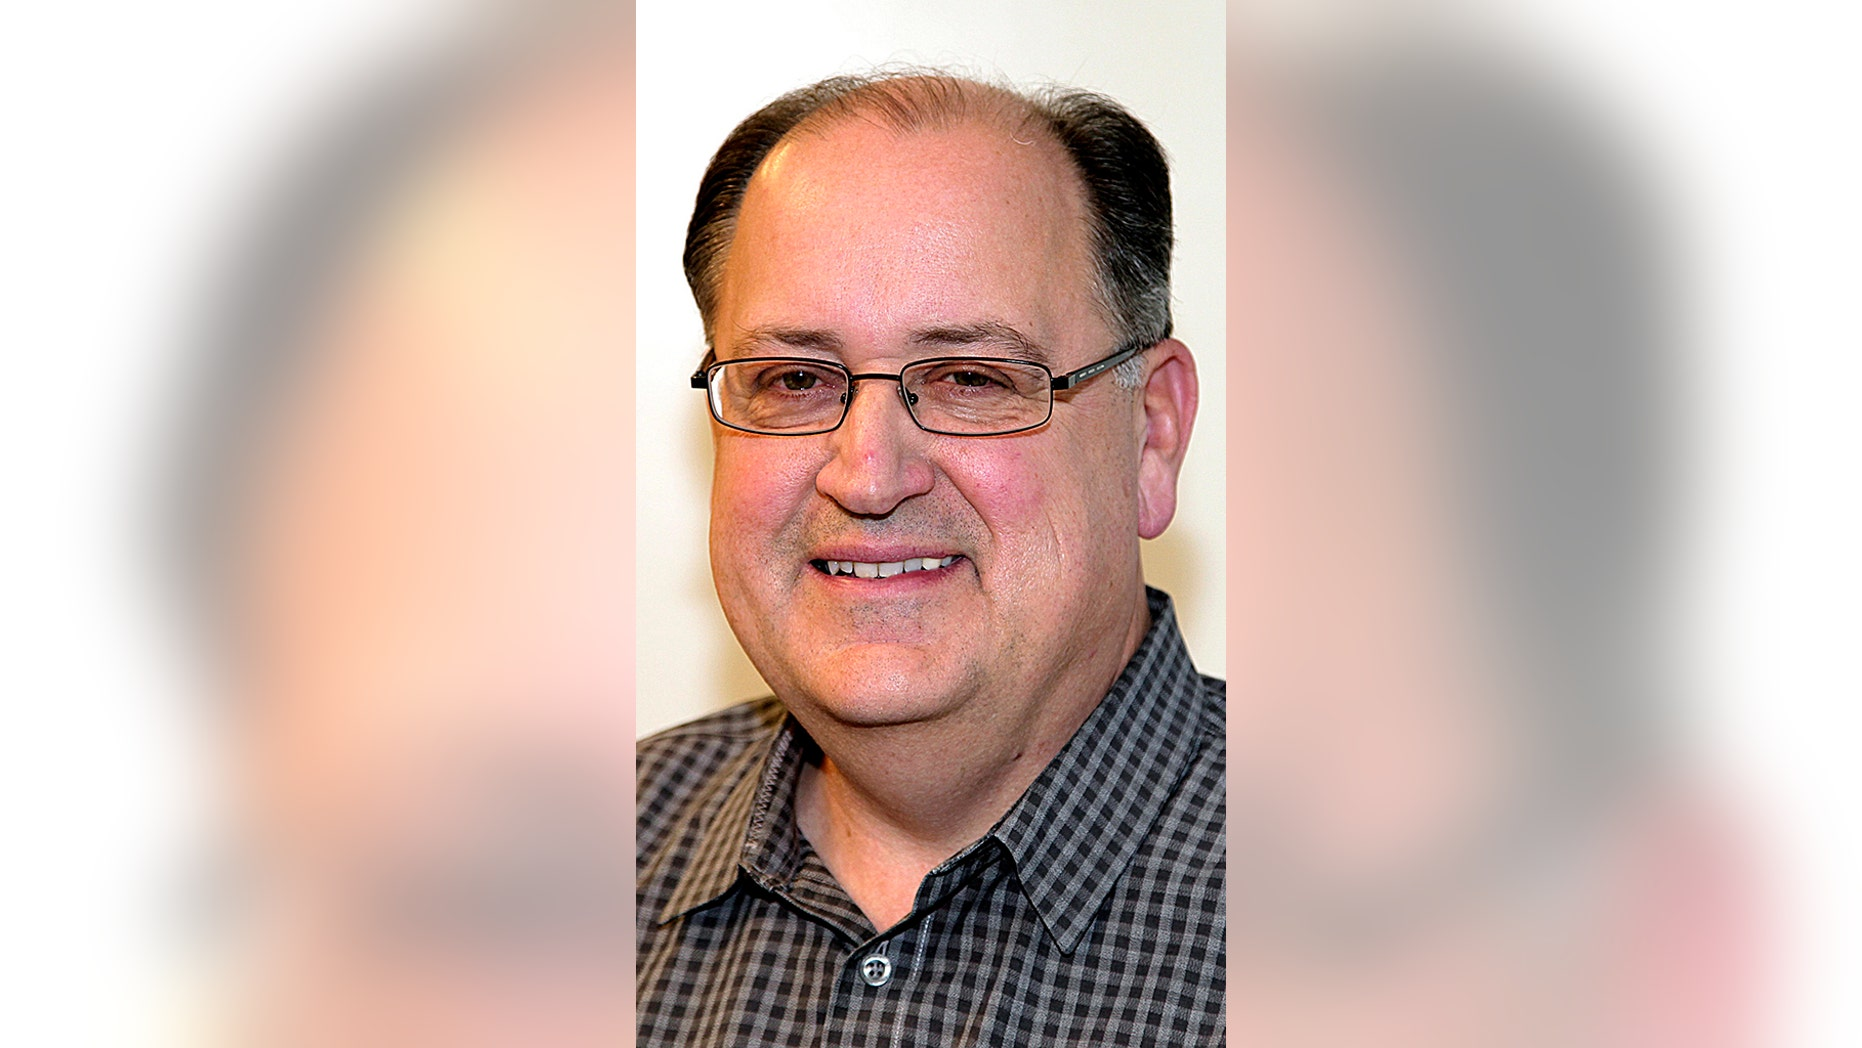 Longtime Boston Globe baseball writer Nick Cafardo has died after collapsing at the Red Sox's spring training ballpark. He was 62.